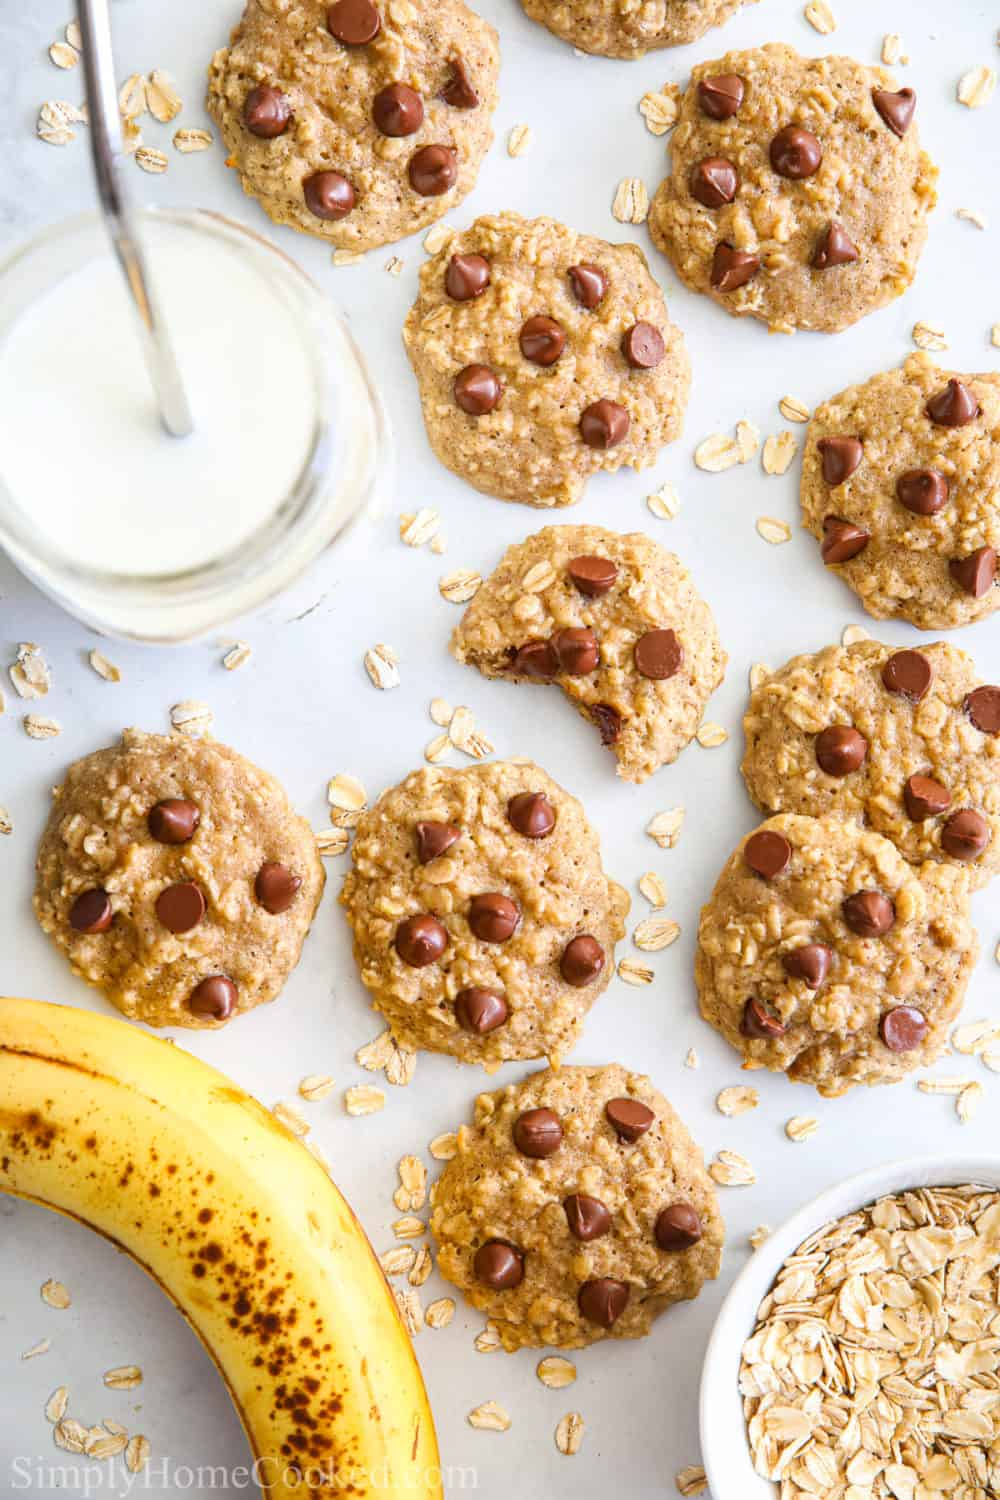 Chewy Banana Oatmeal Cookies with chocolate chips and a glass of milk and banana.